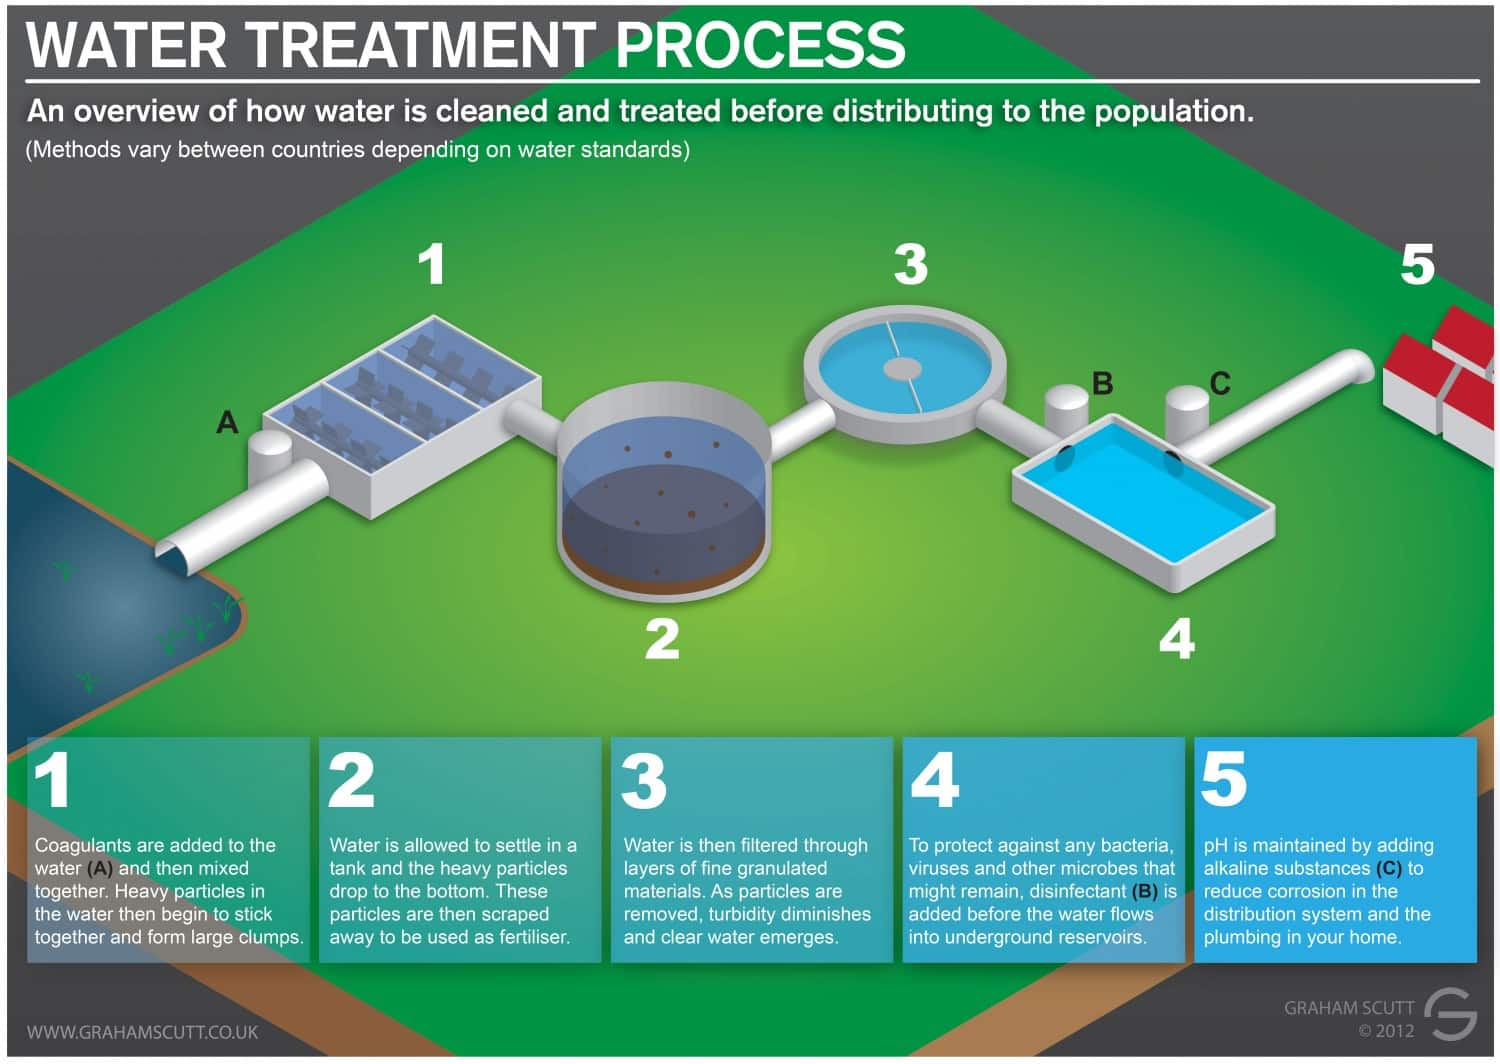 Infographic showing 5 steps in treating water to drinking water standards.